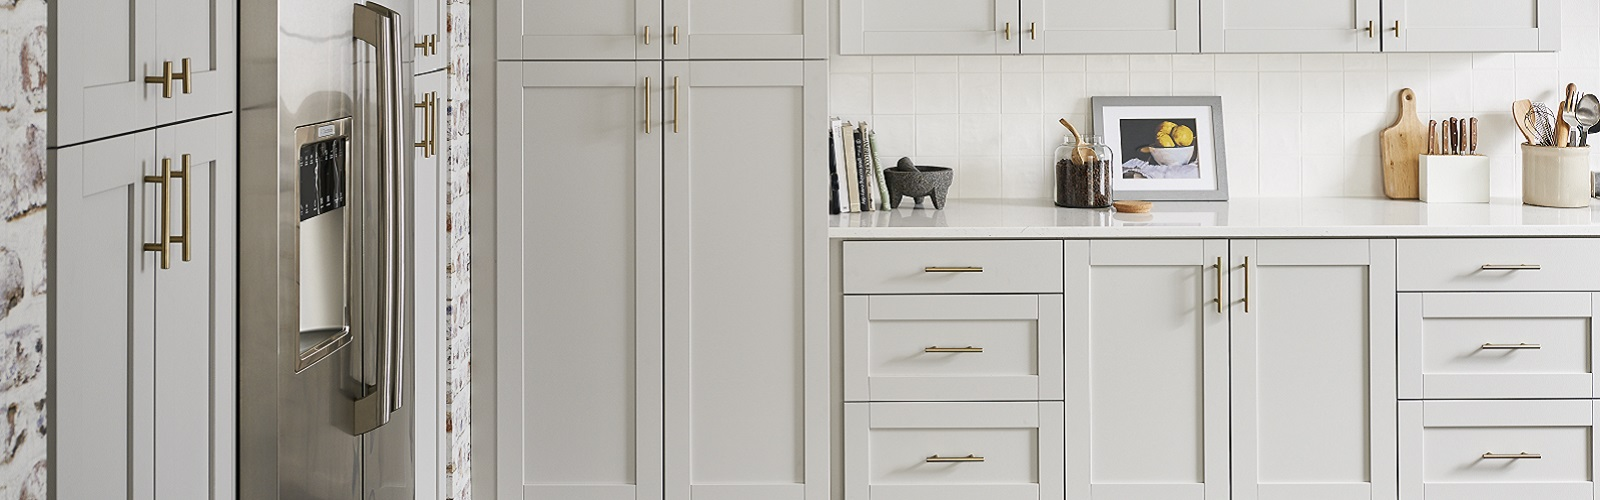 Shaker Style White Cabinets